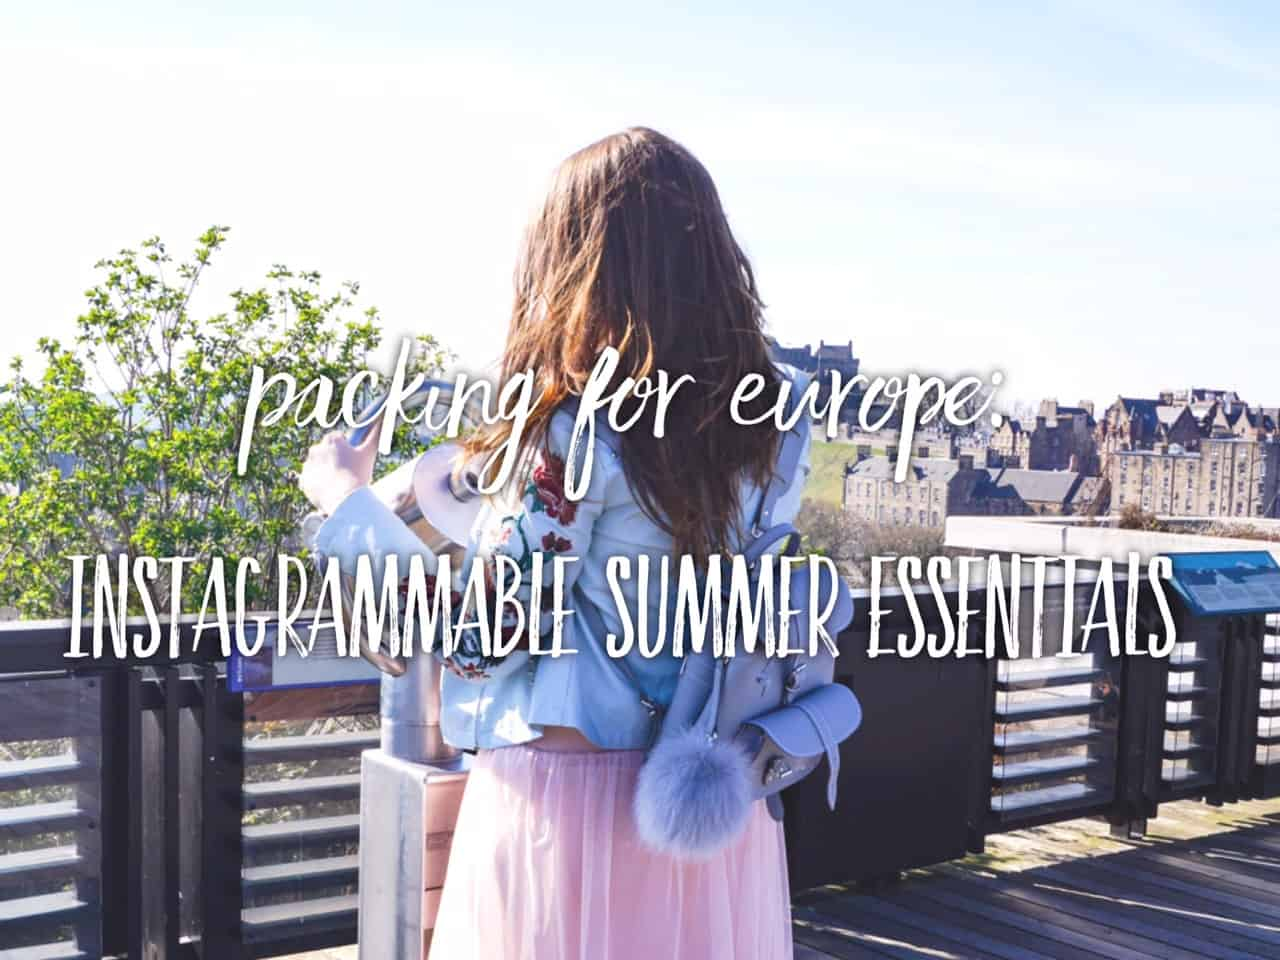 My instagrammable summer essentials